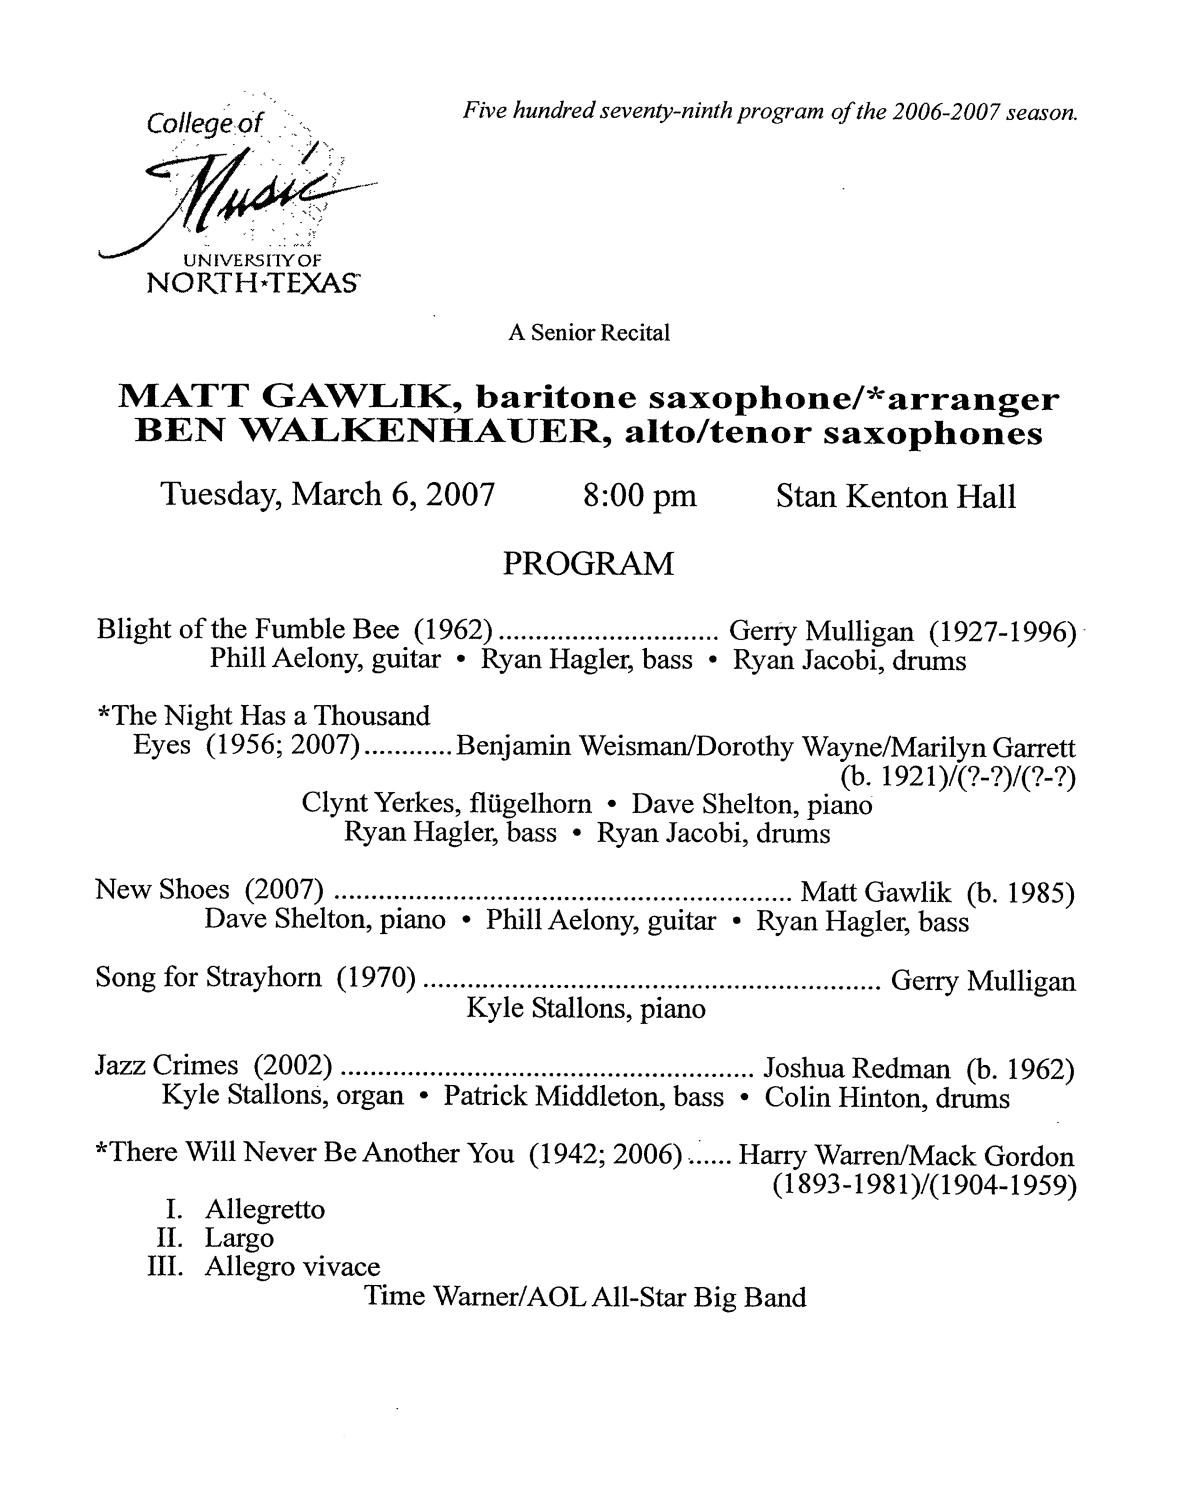 College of Music program book 2006-2007 Student Performances Vol. 1                                                                                                      [Sequence #]: 154 of 319